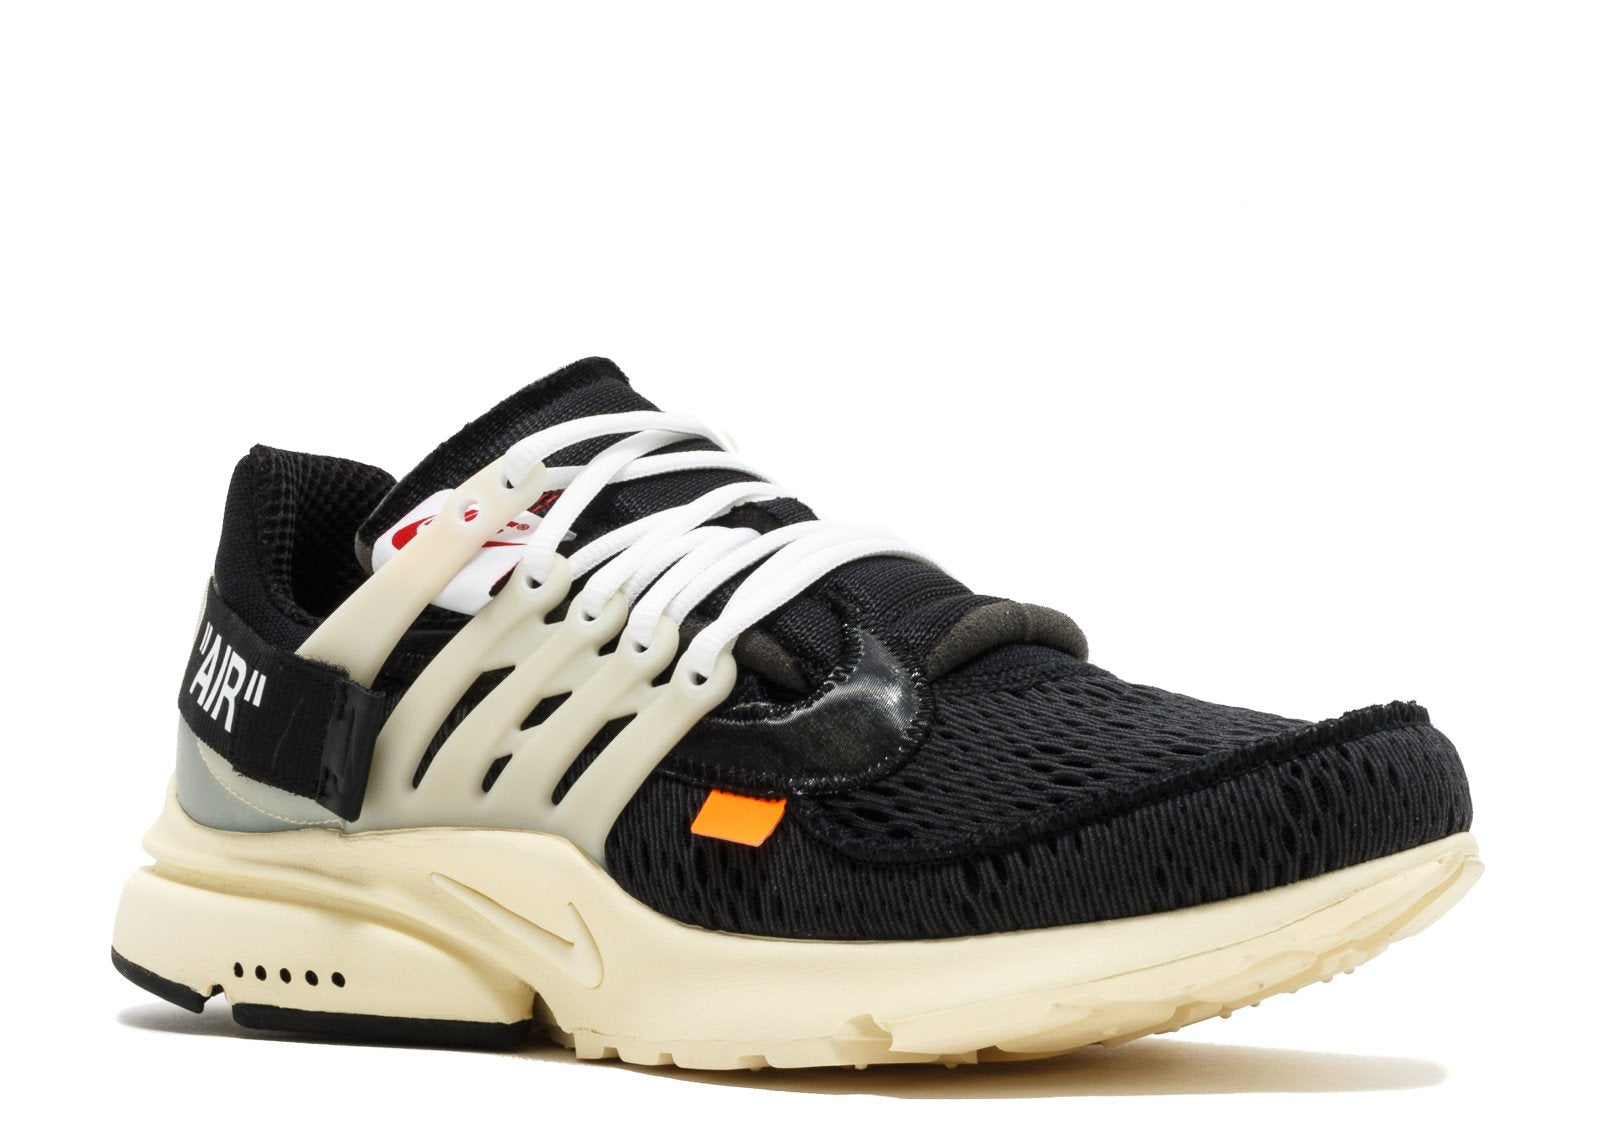 Off White X Nike Air Presto 'The Ten'